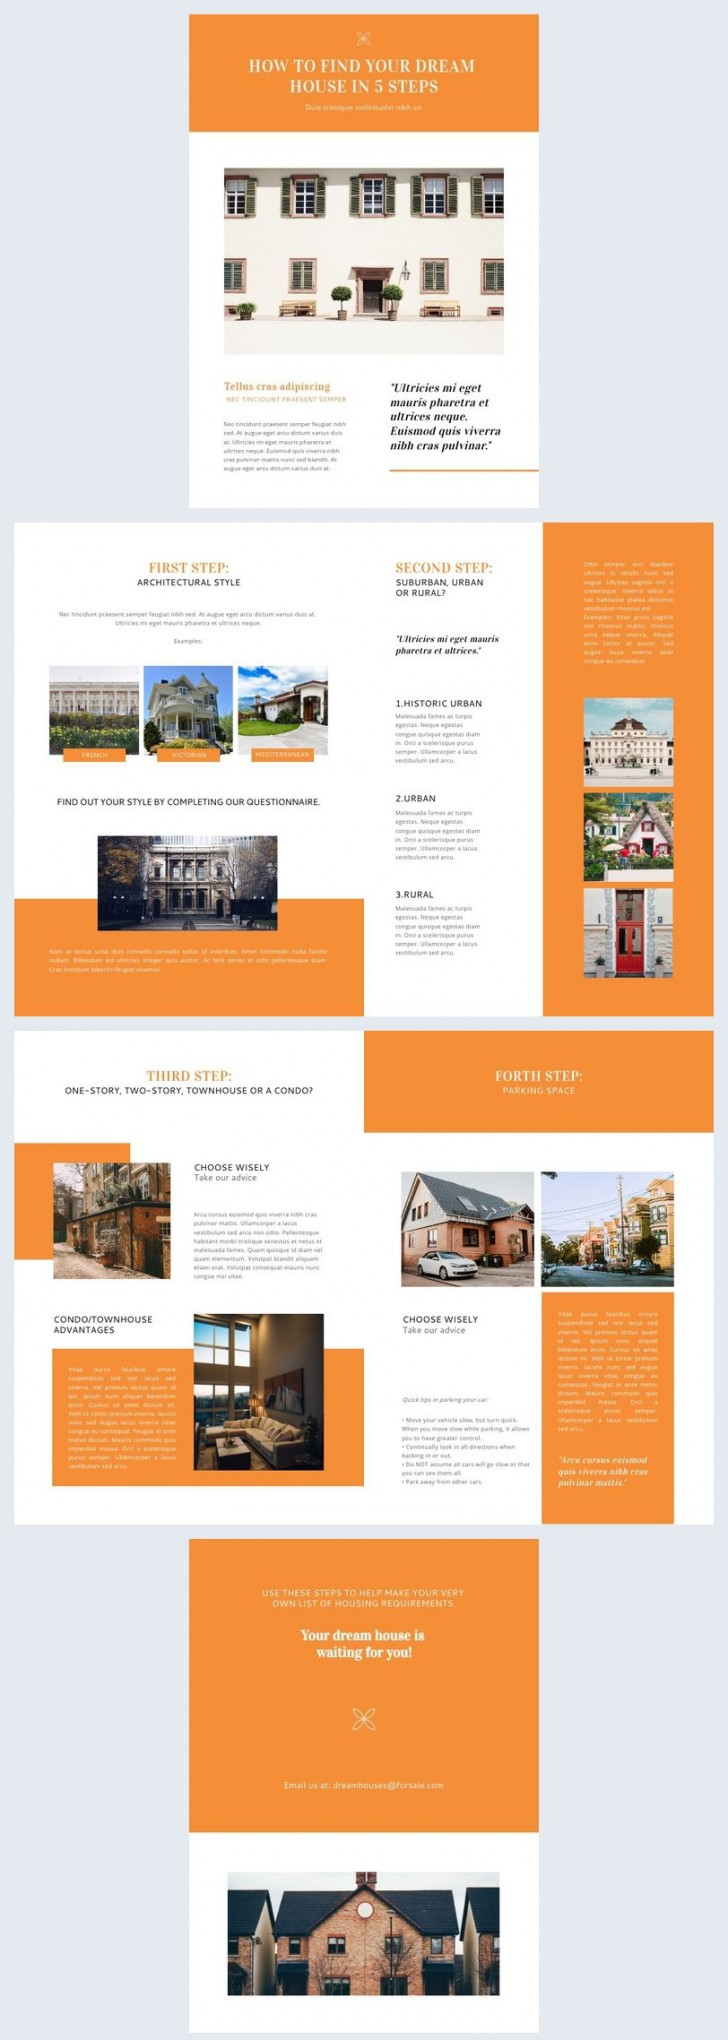 009 Fantastic Real Estate Newsletter Template Picture  Free Mailchimp728